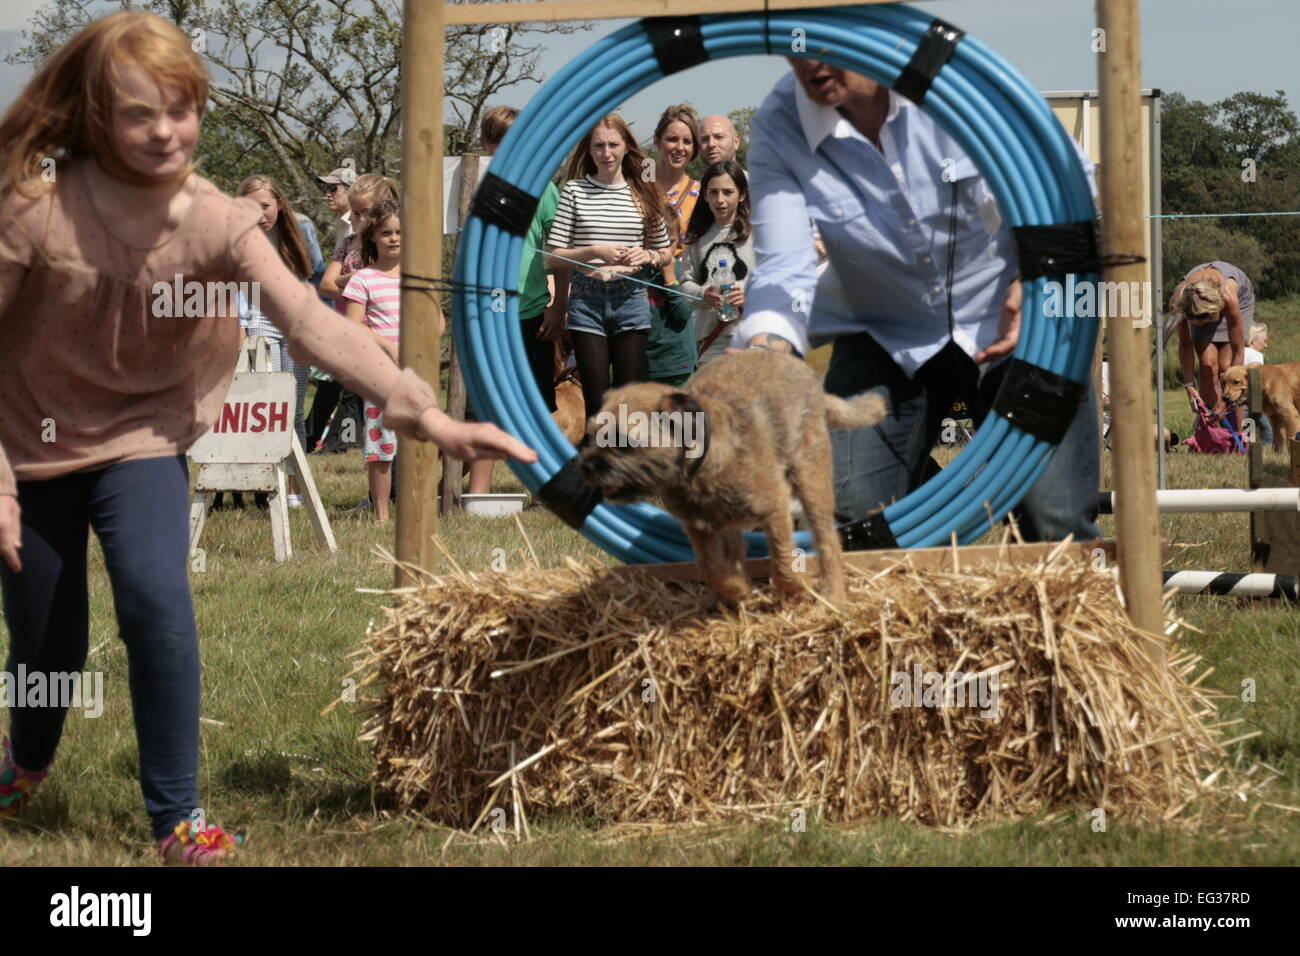 Dog agility at the Ellingham & Ringwood Agricultural Show - Stock Image